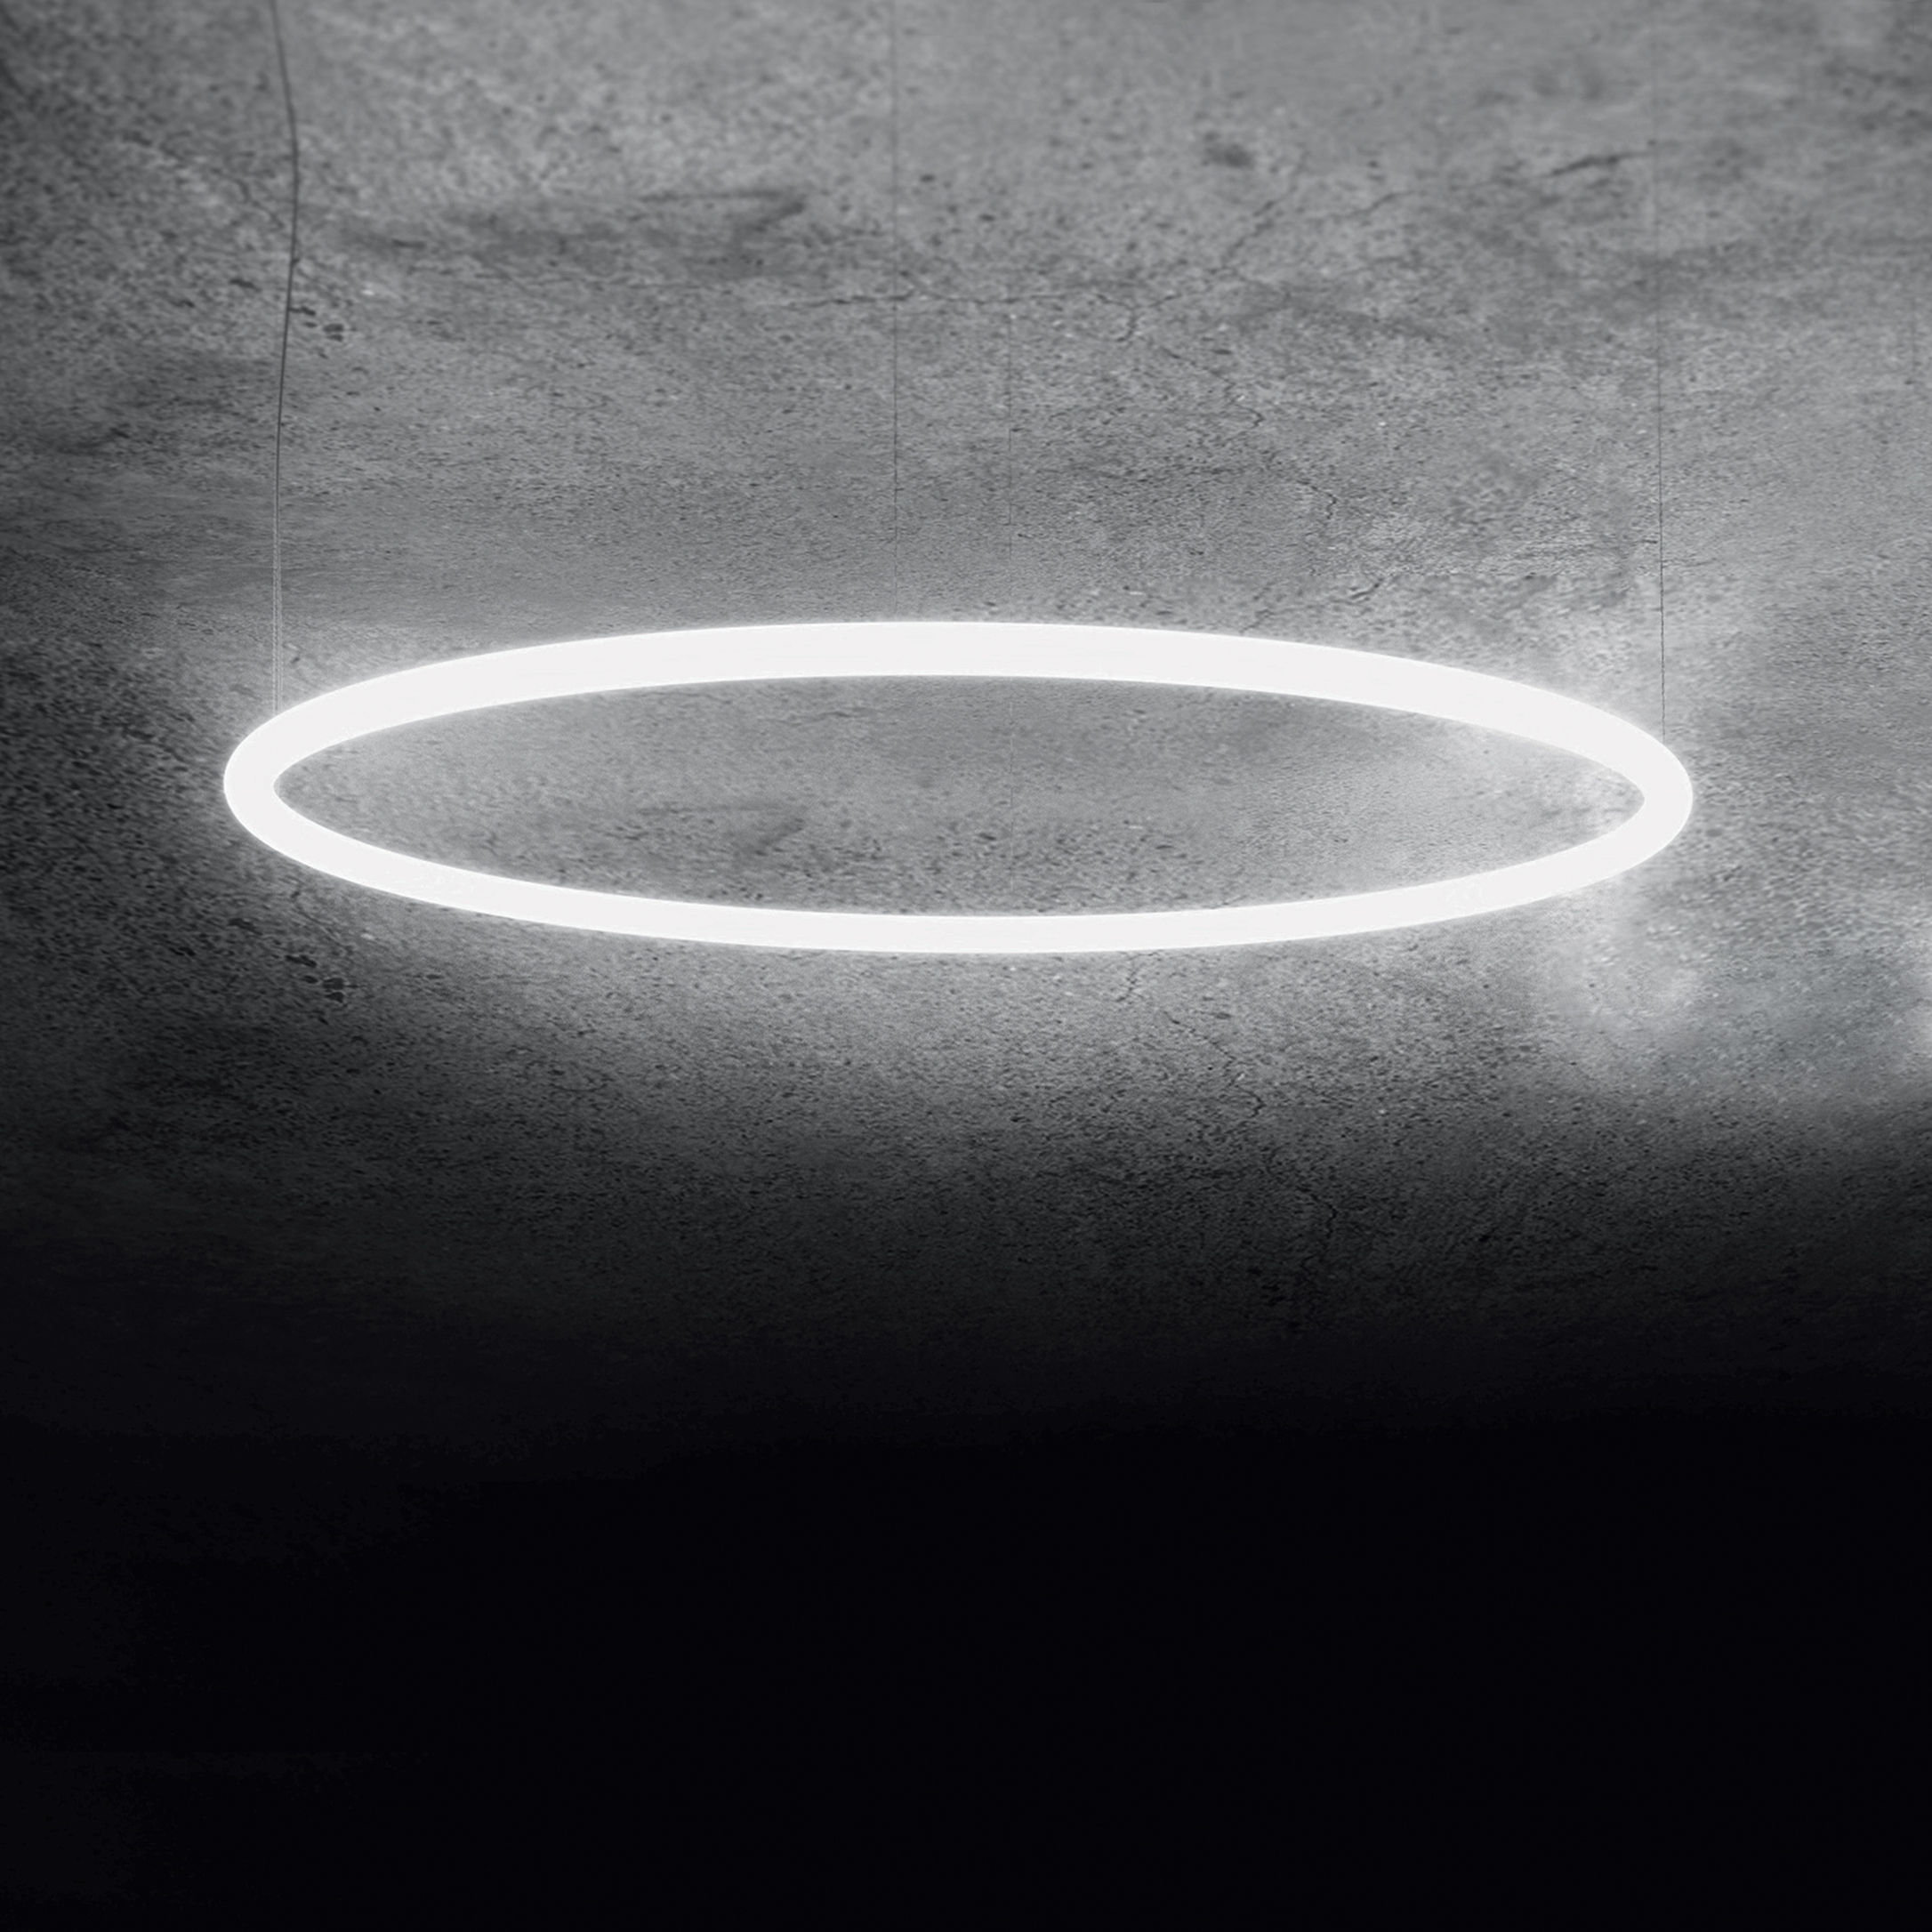 Lighting - Pendant Lighting - Alphabet of light Pendant - / Circular - Ø 90 cm by Artemide - White / Ø 90 cm - Aluminium, Methacrylate